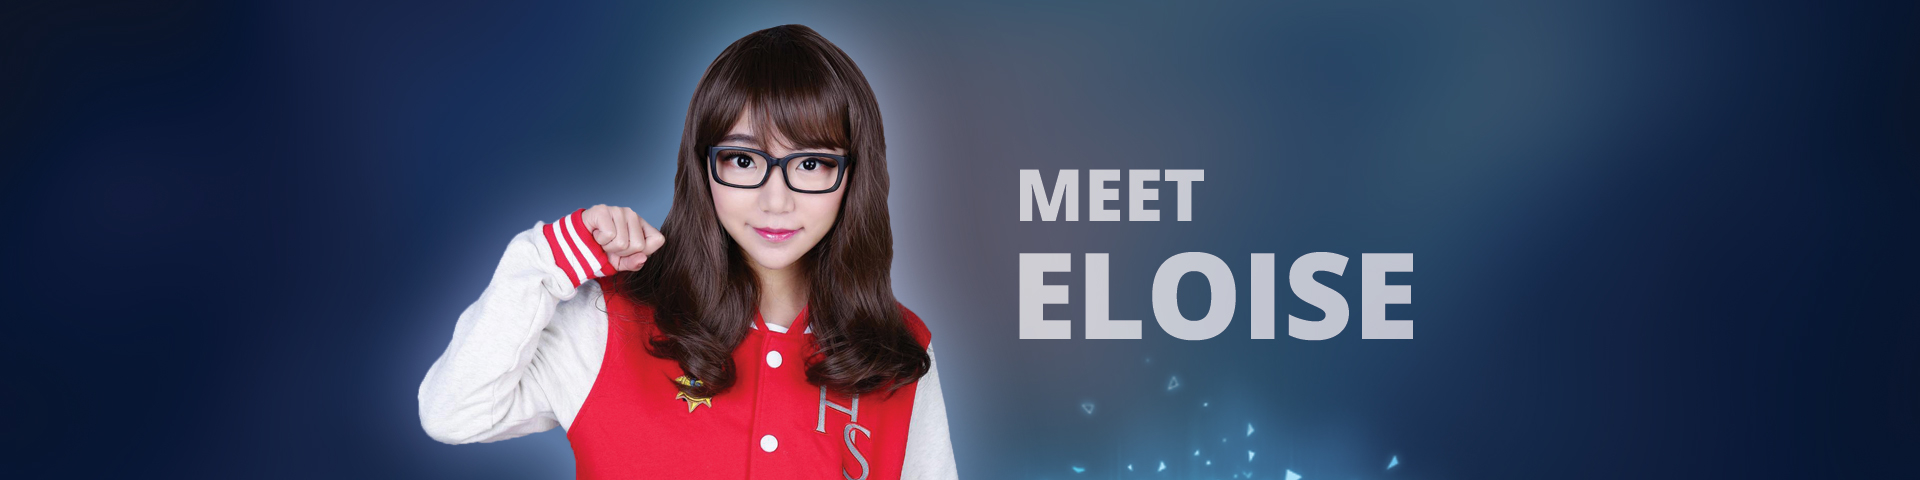 f11a319fa Eloise Joins Tempo Storm - Articles - Tempo Storm